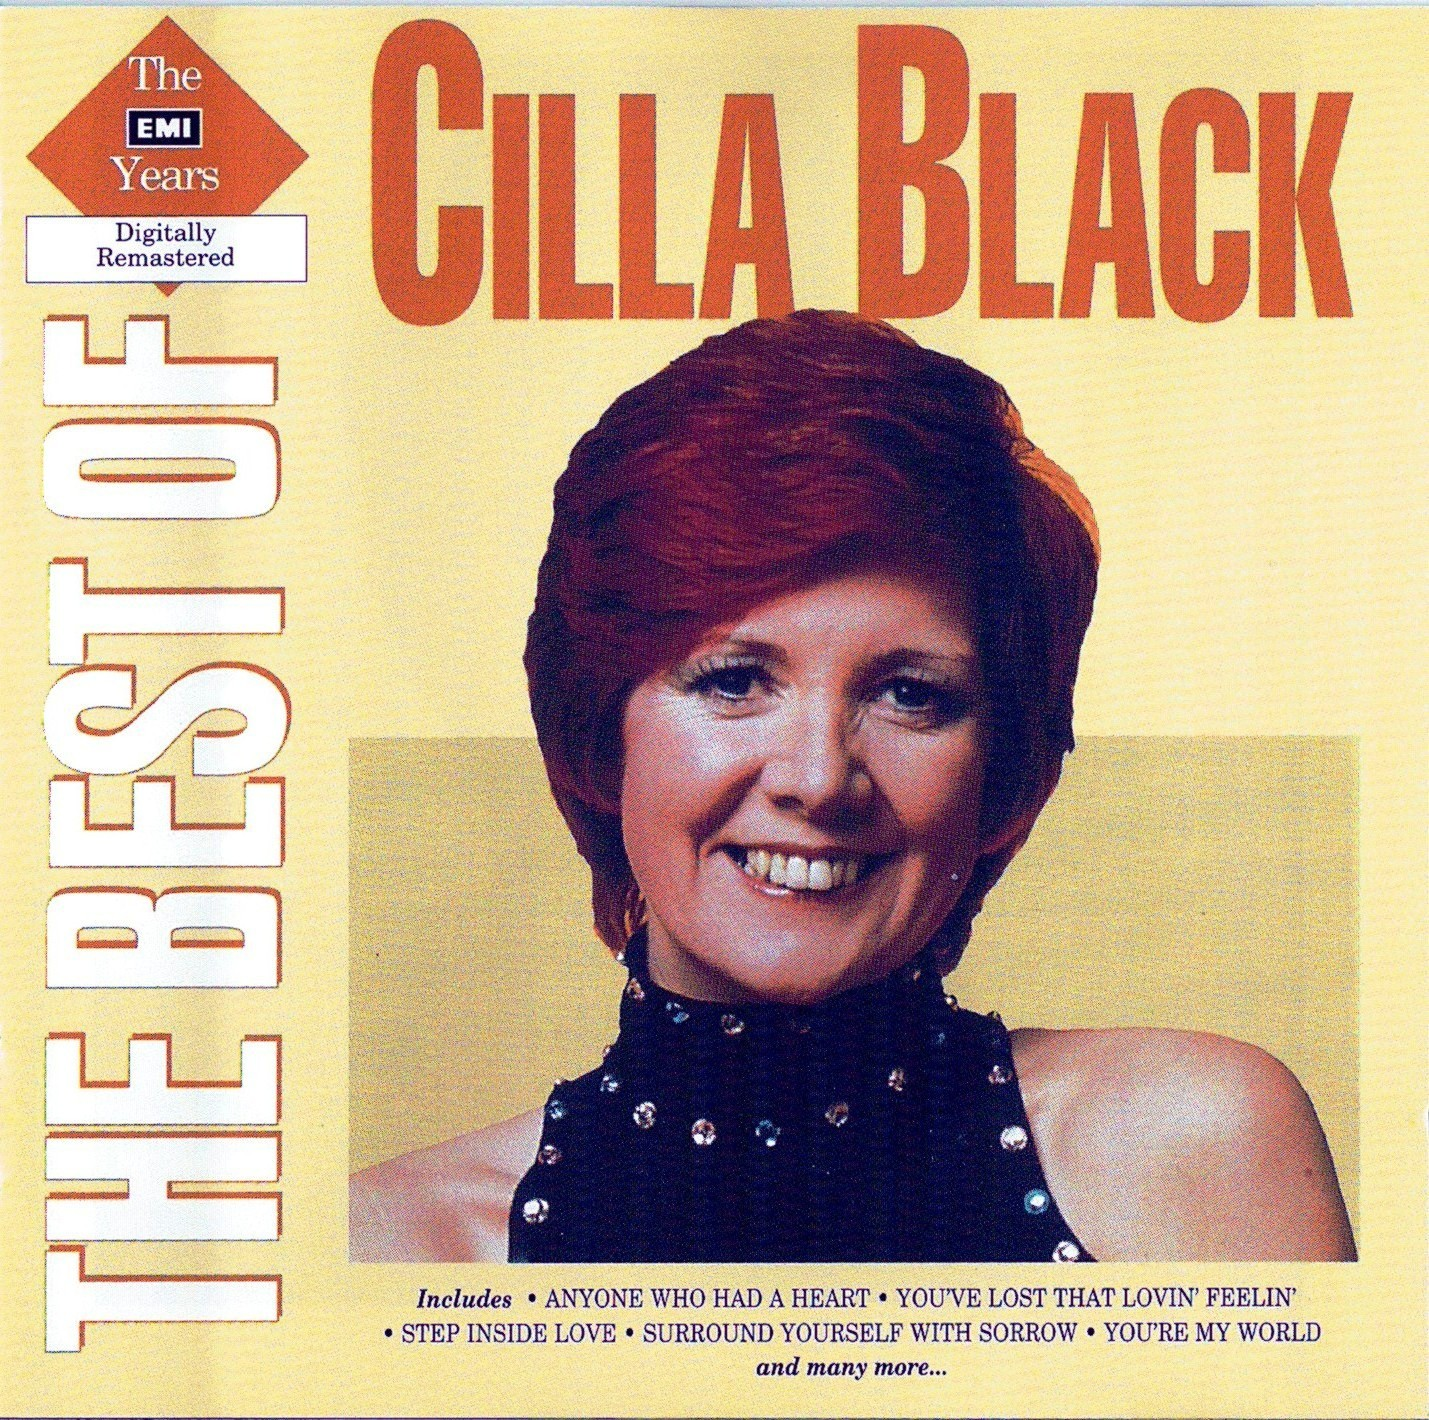 http://3.bp.blogspot.com/-Qc25Y97Ttgk/Tme0yaDIntI/AAAAAAAAB24/NCFXVUuEBX8/s1600/cilla_black_the_best_of_the_emi_years_1999_retail_cd-front.jpg